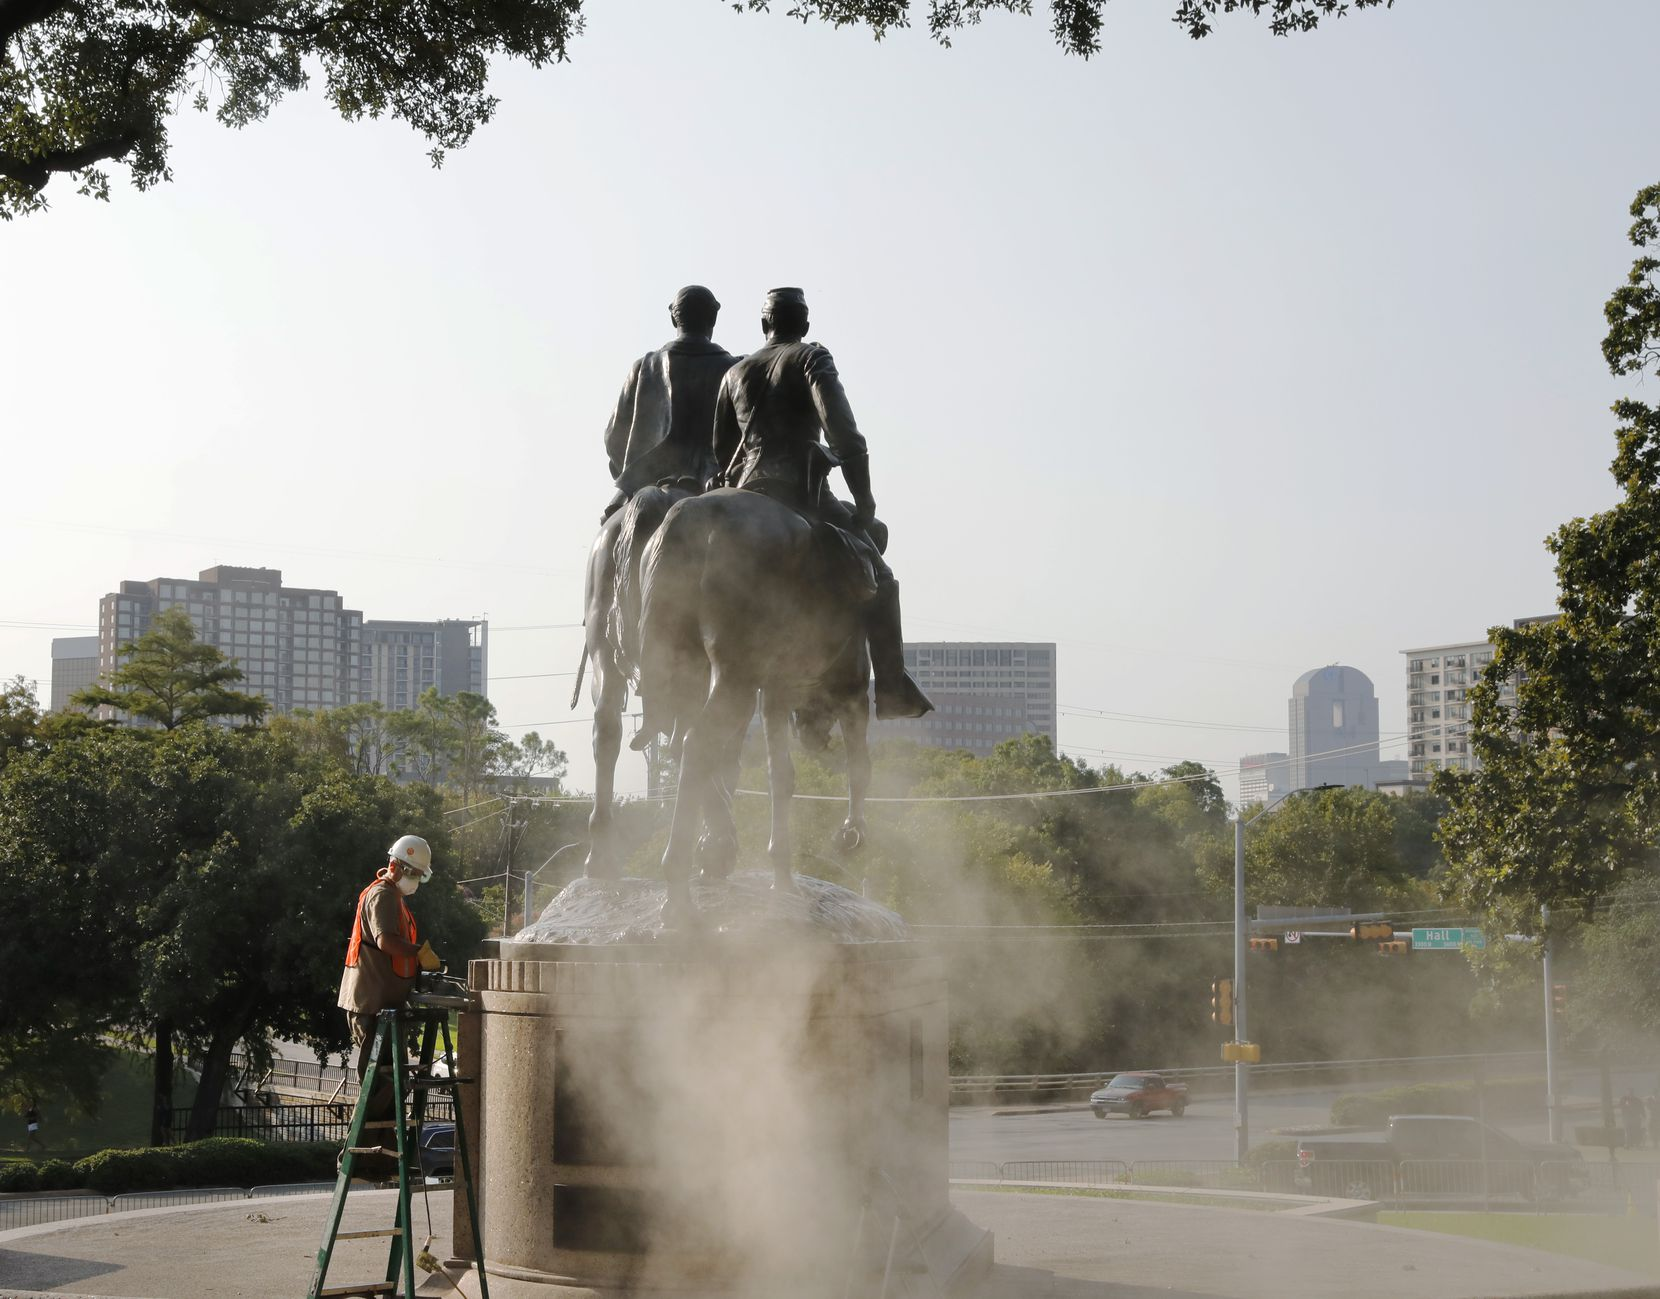 Michael van Enter works on removing the Robert E. Lee statue at Robert E. Lee Park in Dallas on  Sept. 8, 2017.